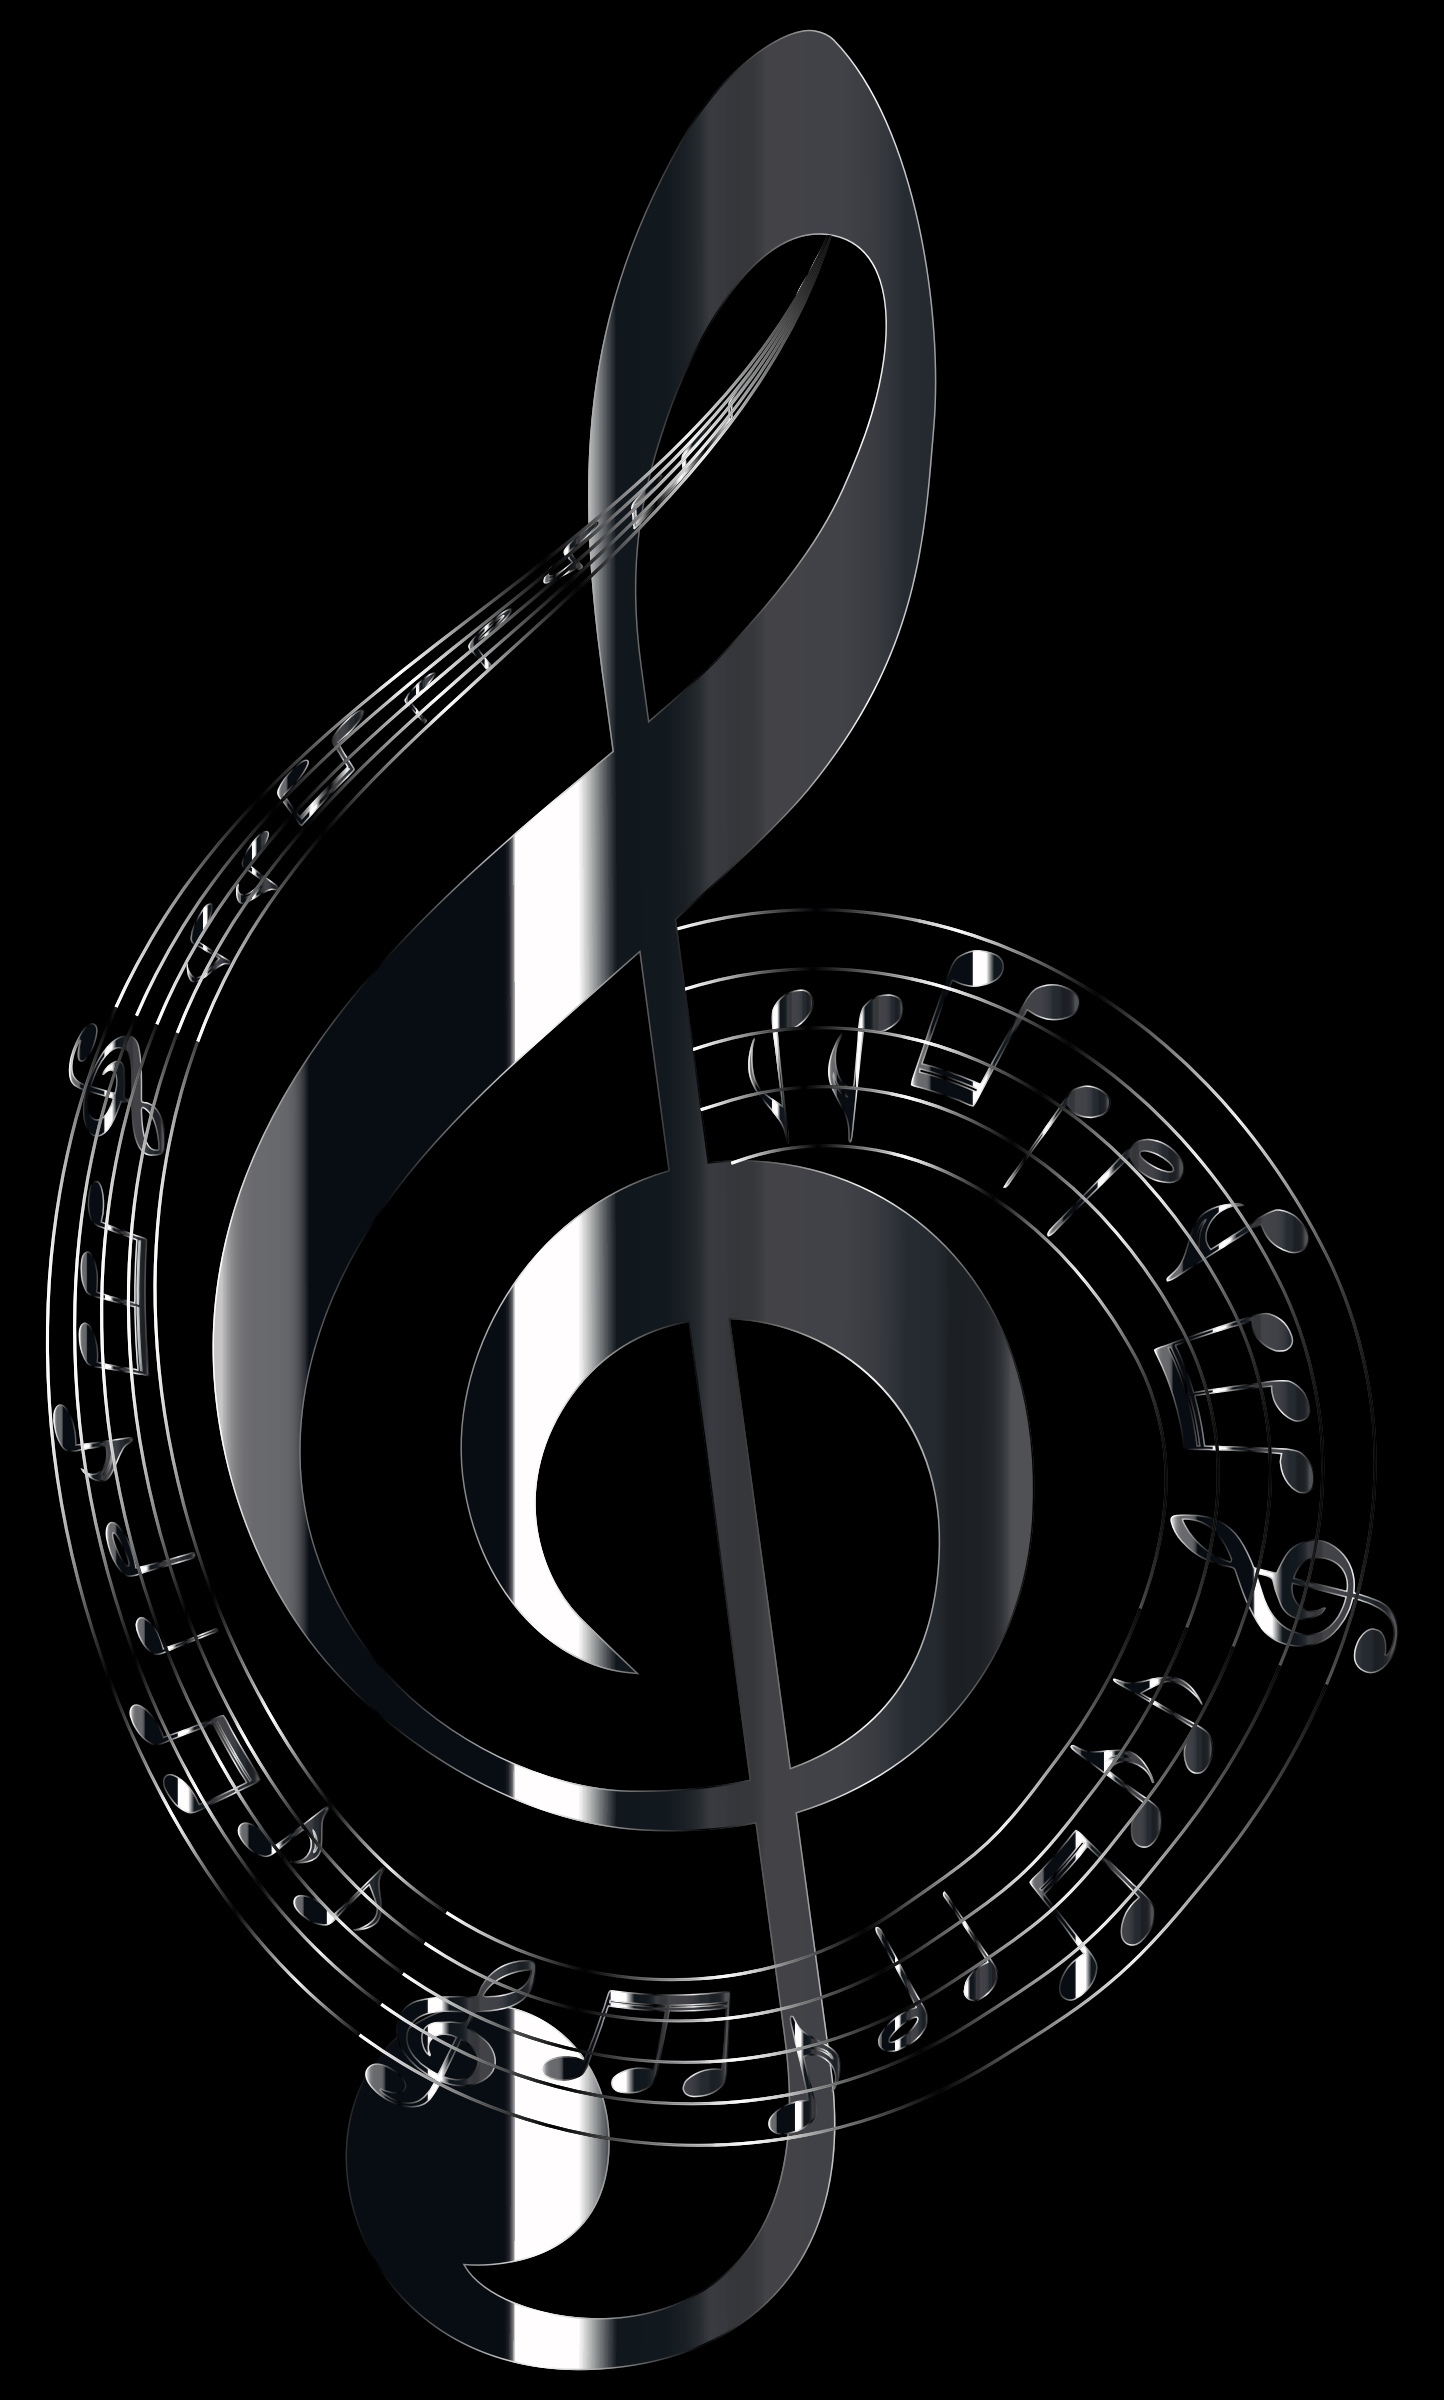 Polished Onyx Musical Notes Typography by GDJ